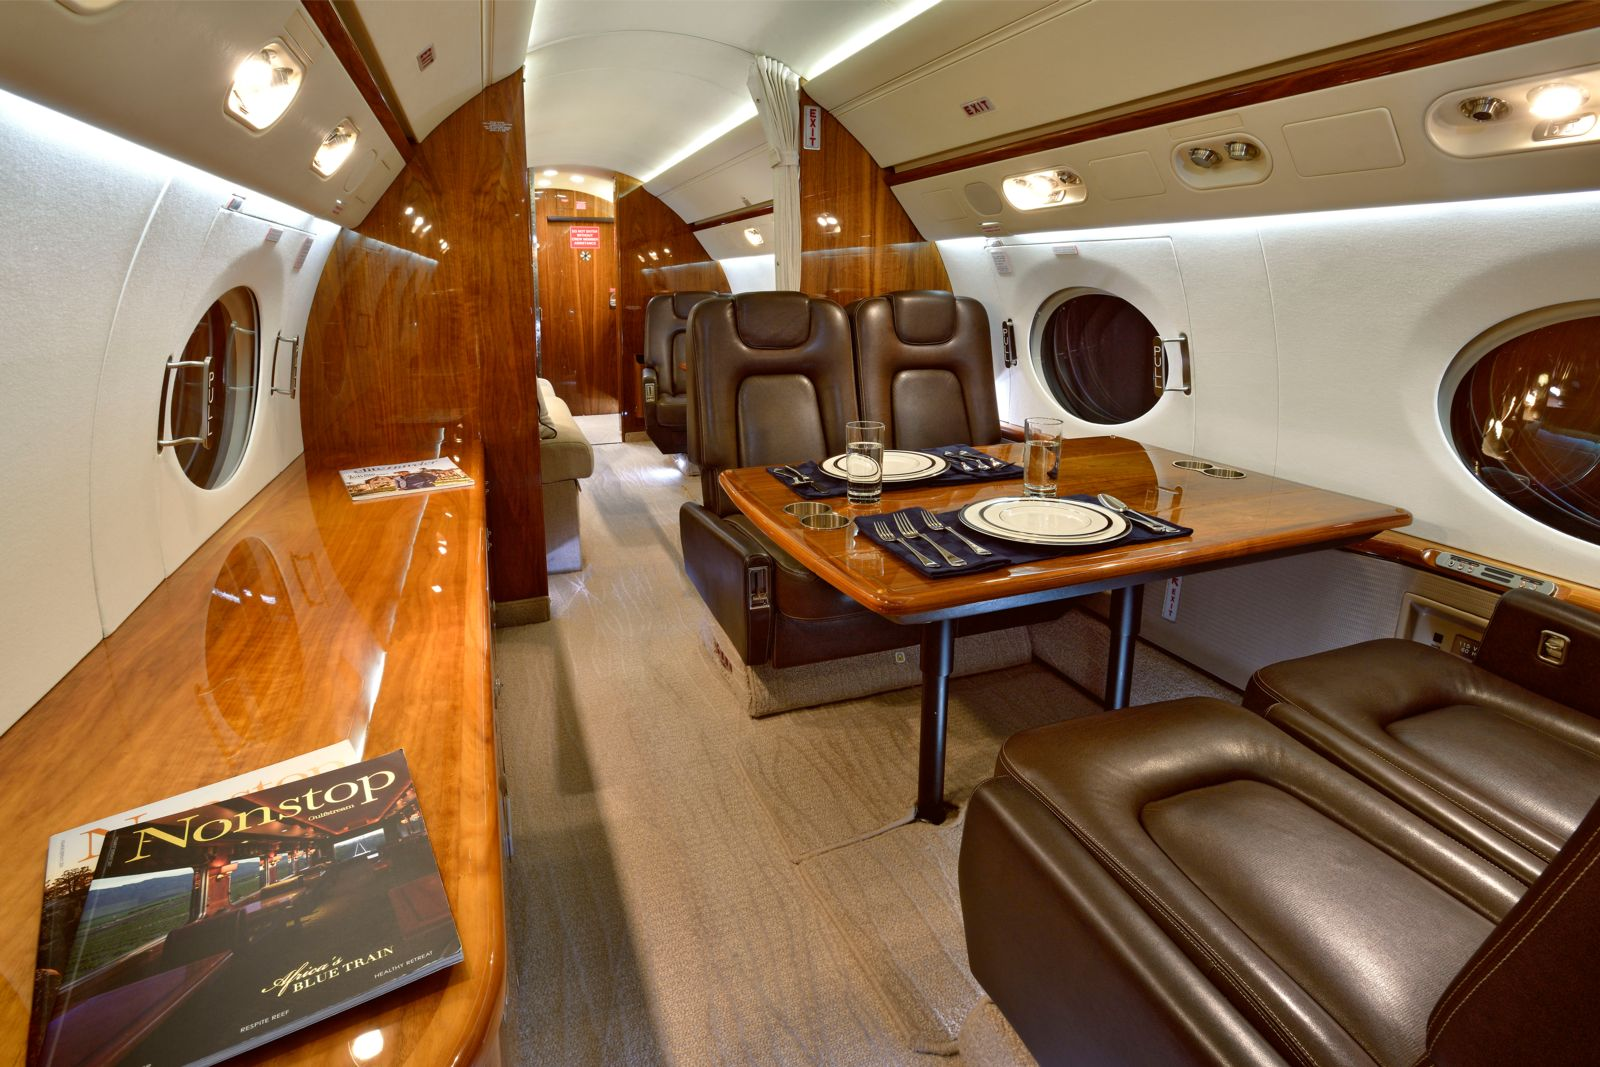 Gulfstream G550  S/N 5211 for sale | gallery image: /userfiles/images/G550_SN_5211/int8b_300.jpg